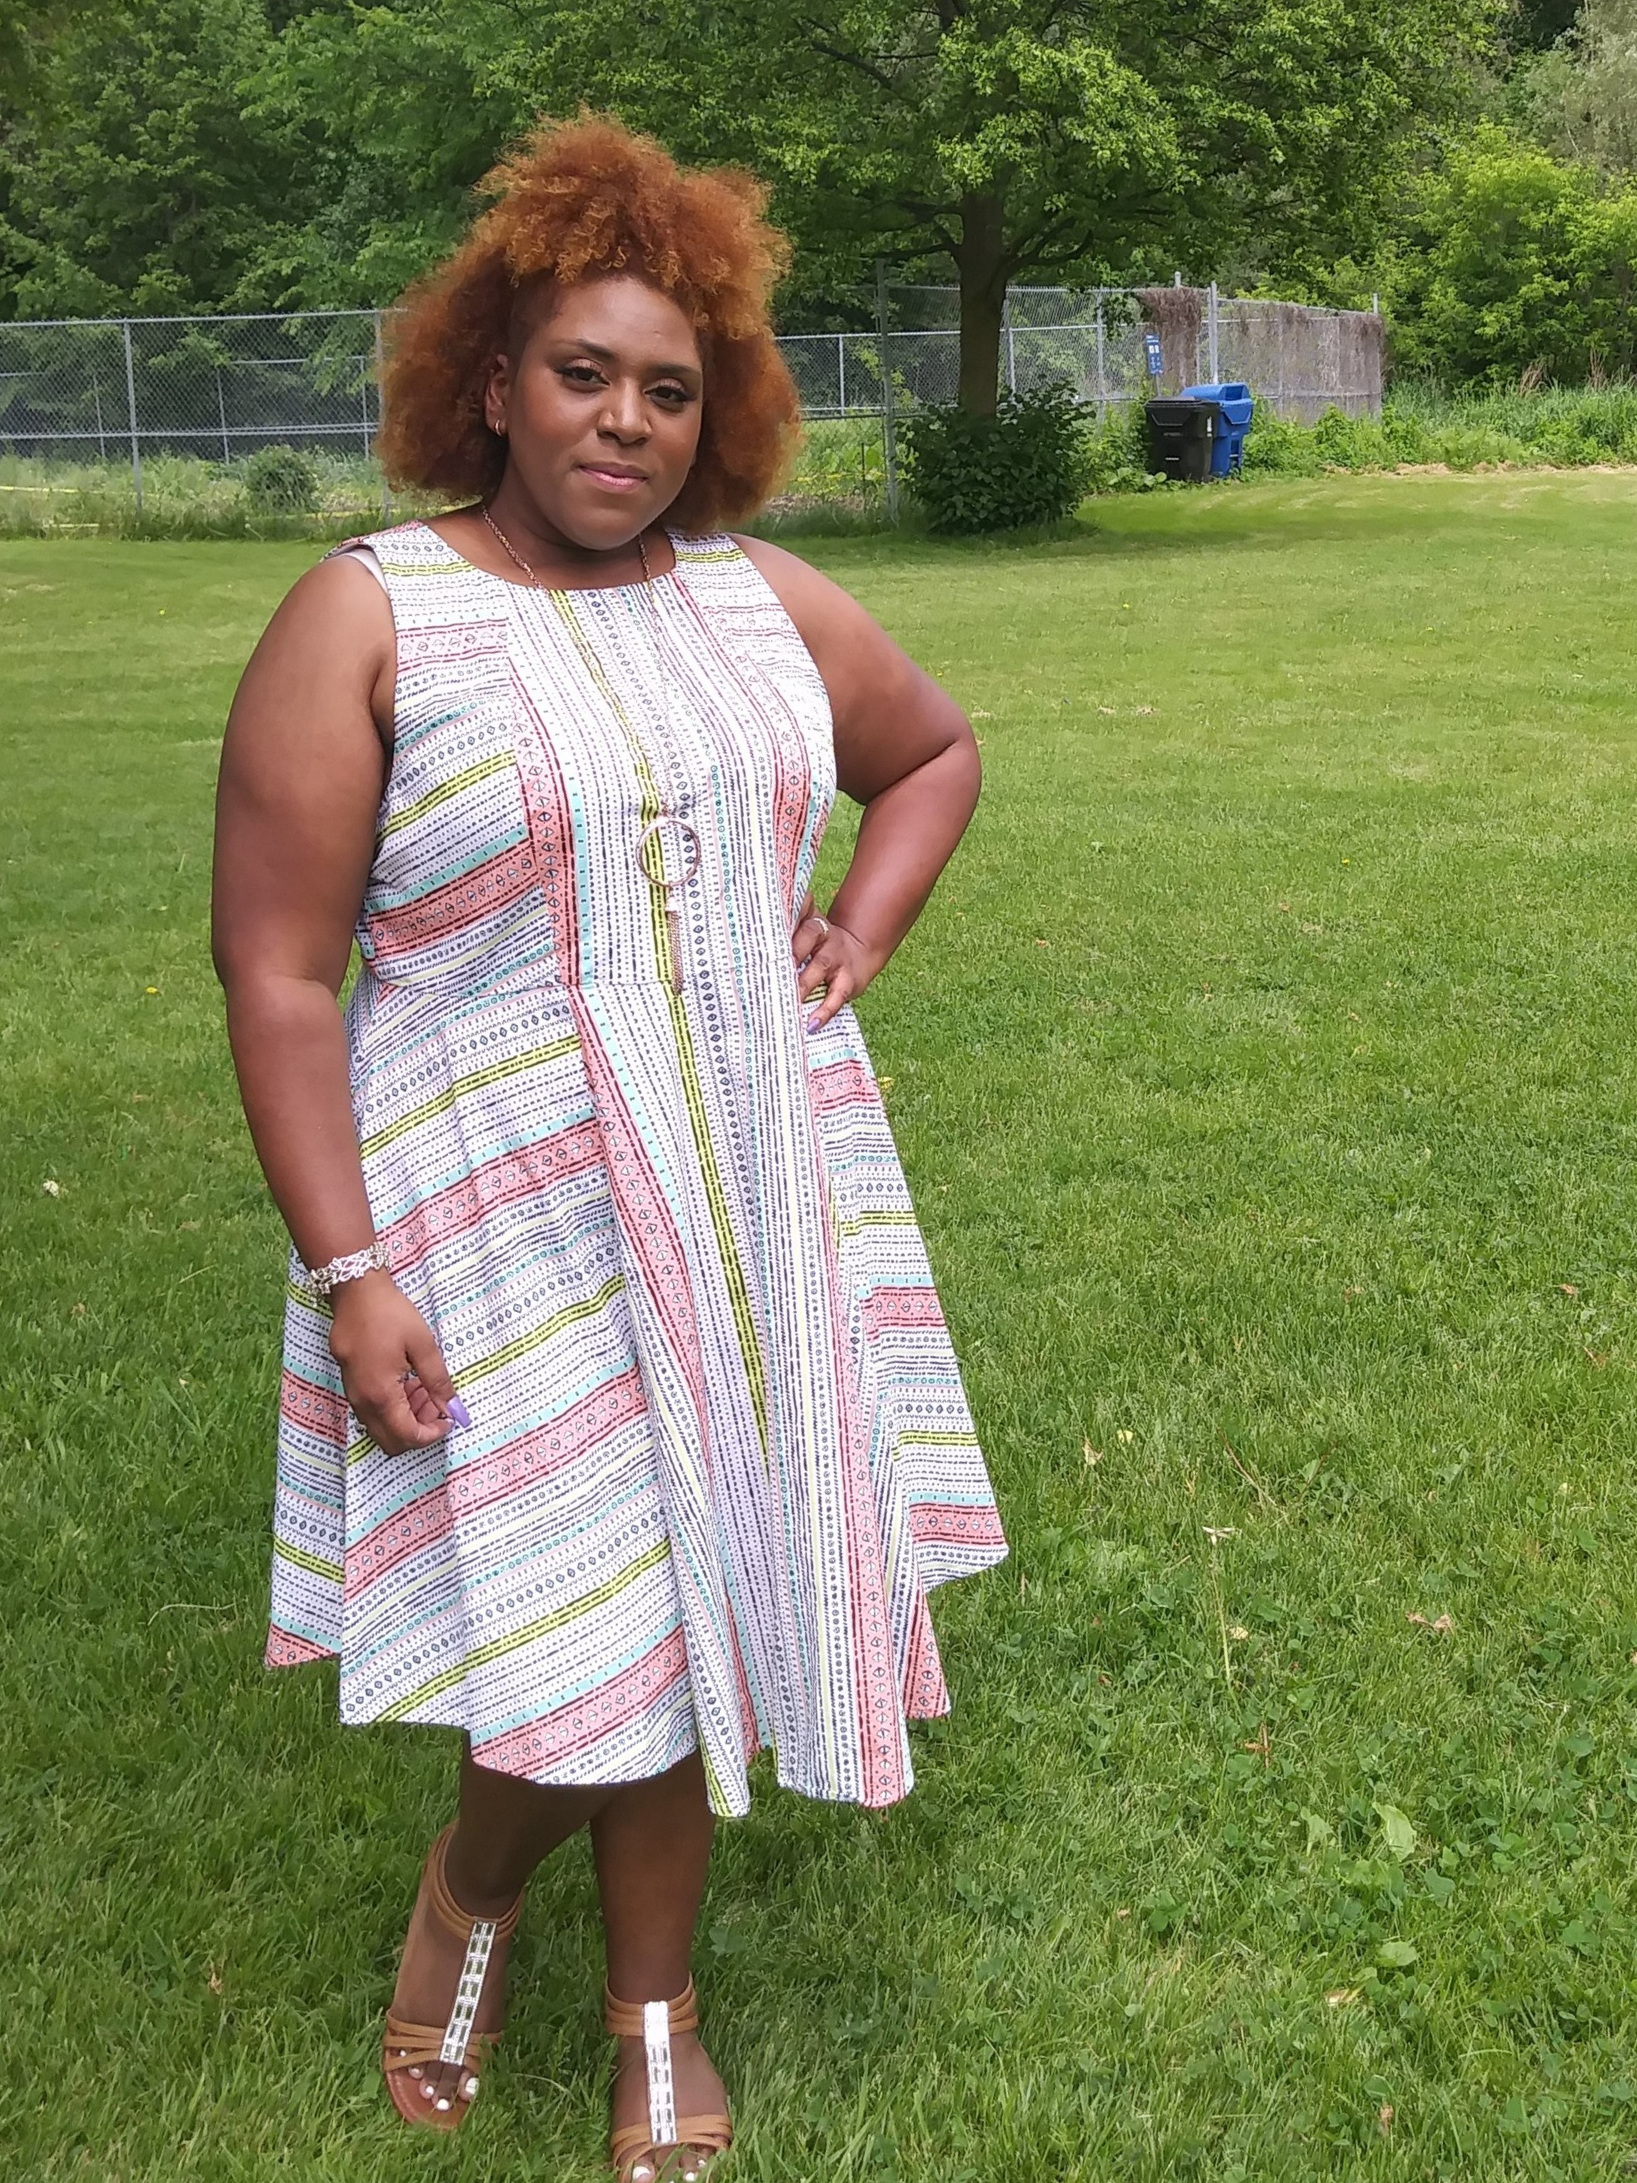 Alesha Anchundia, Founder of Curvy Runner Girl in Toronto, ON, Canada, on June 2, 2018 (Size 20)